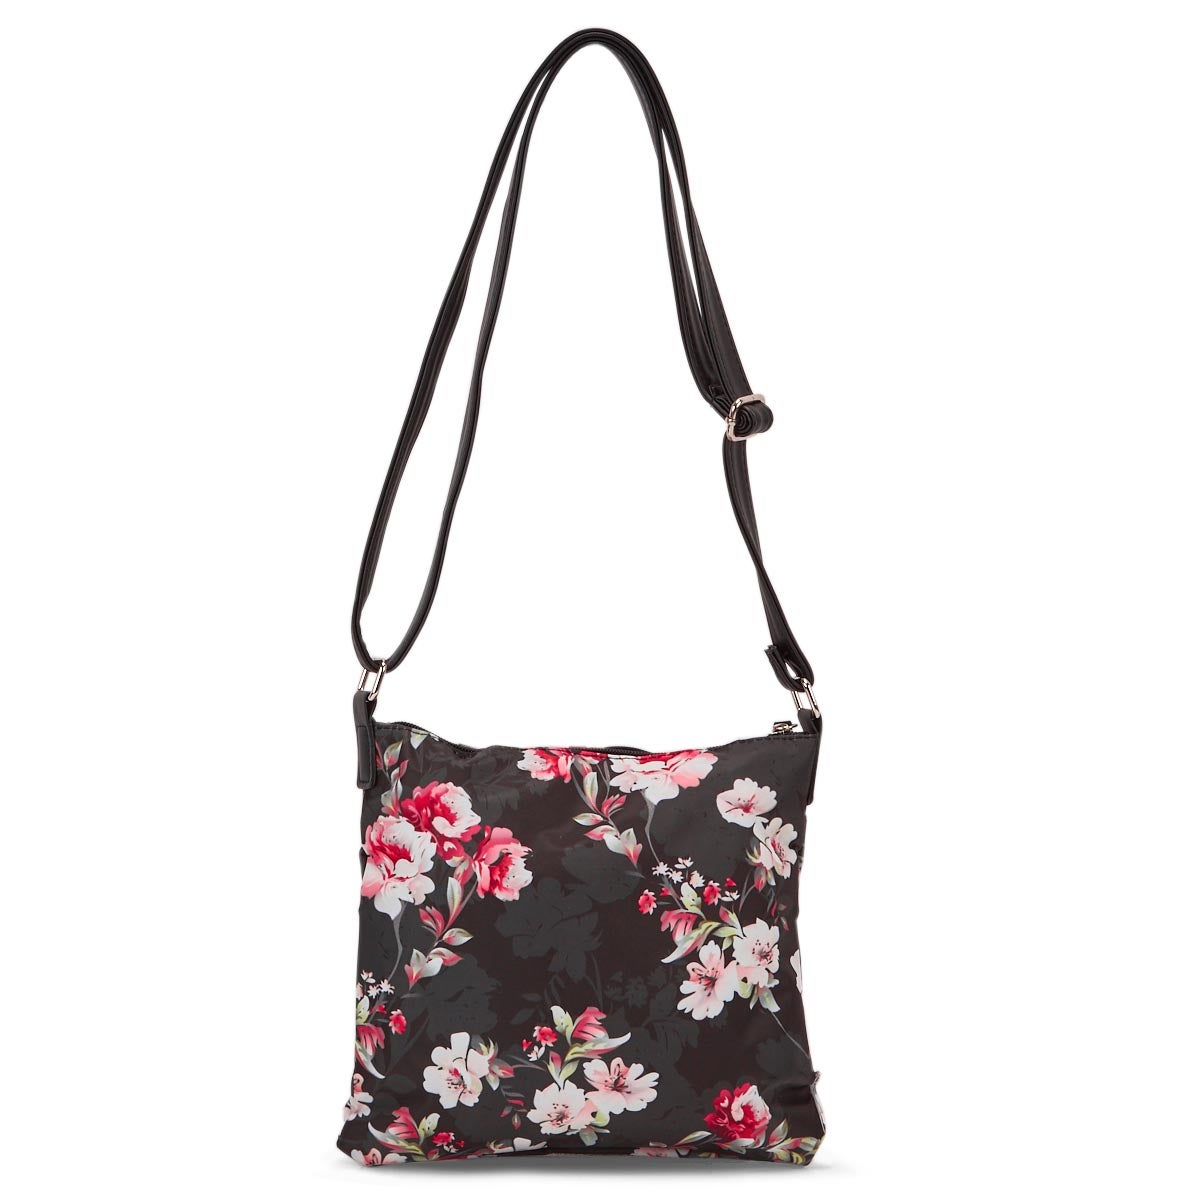 Lds black/pink flower cross body bag